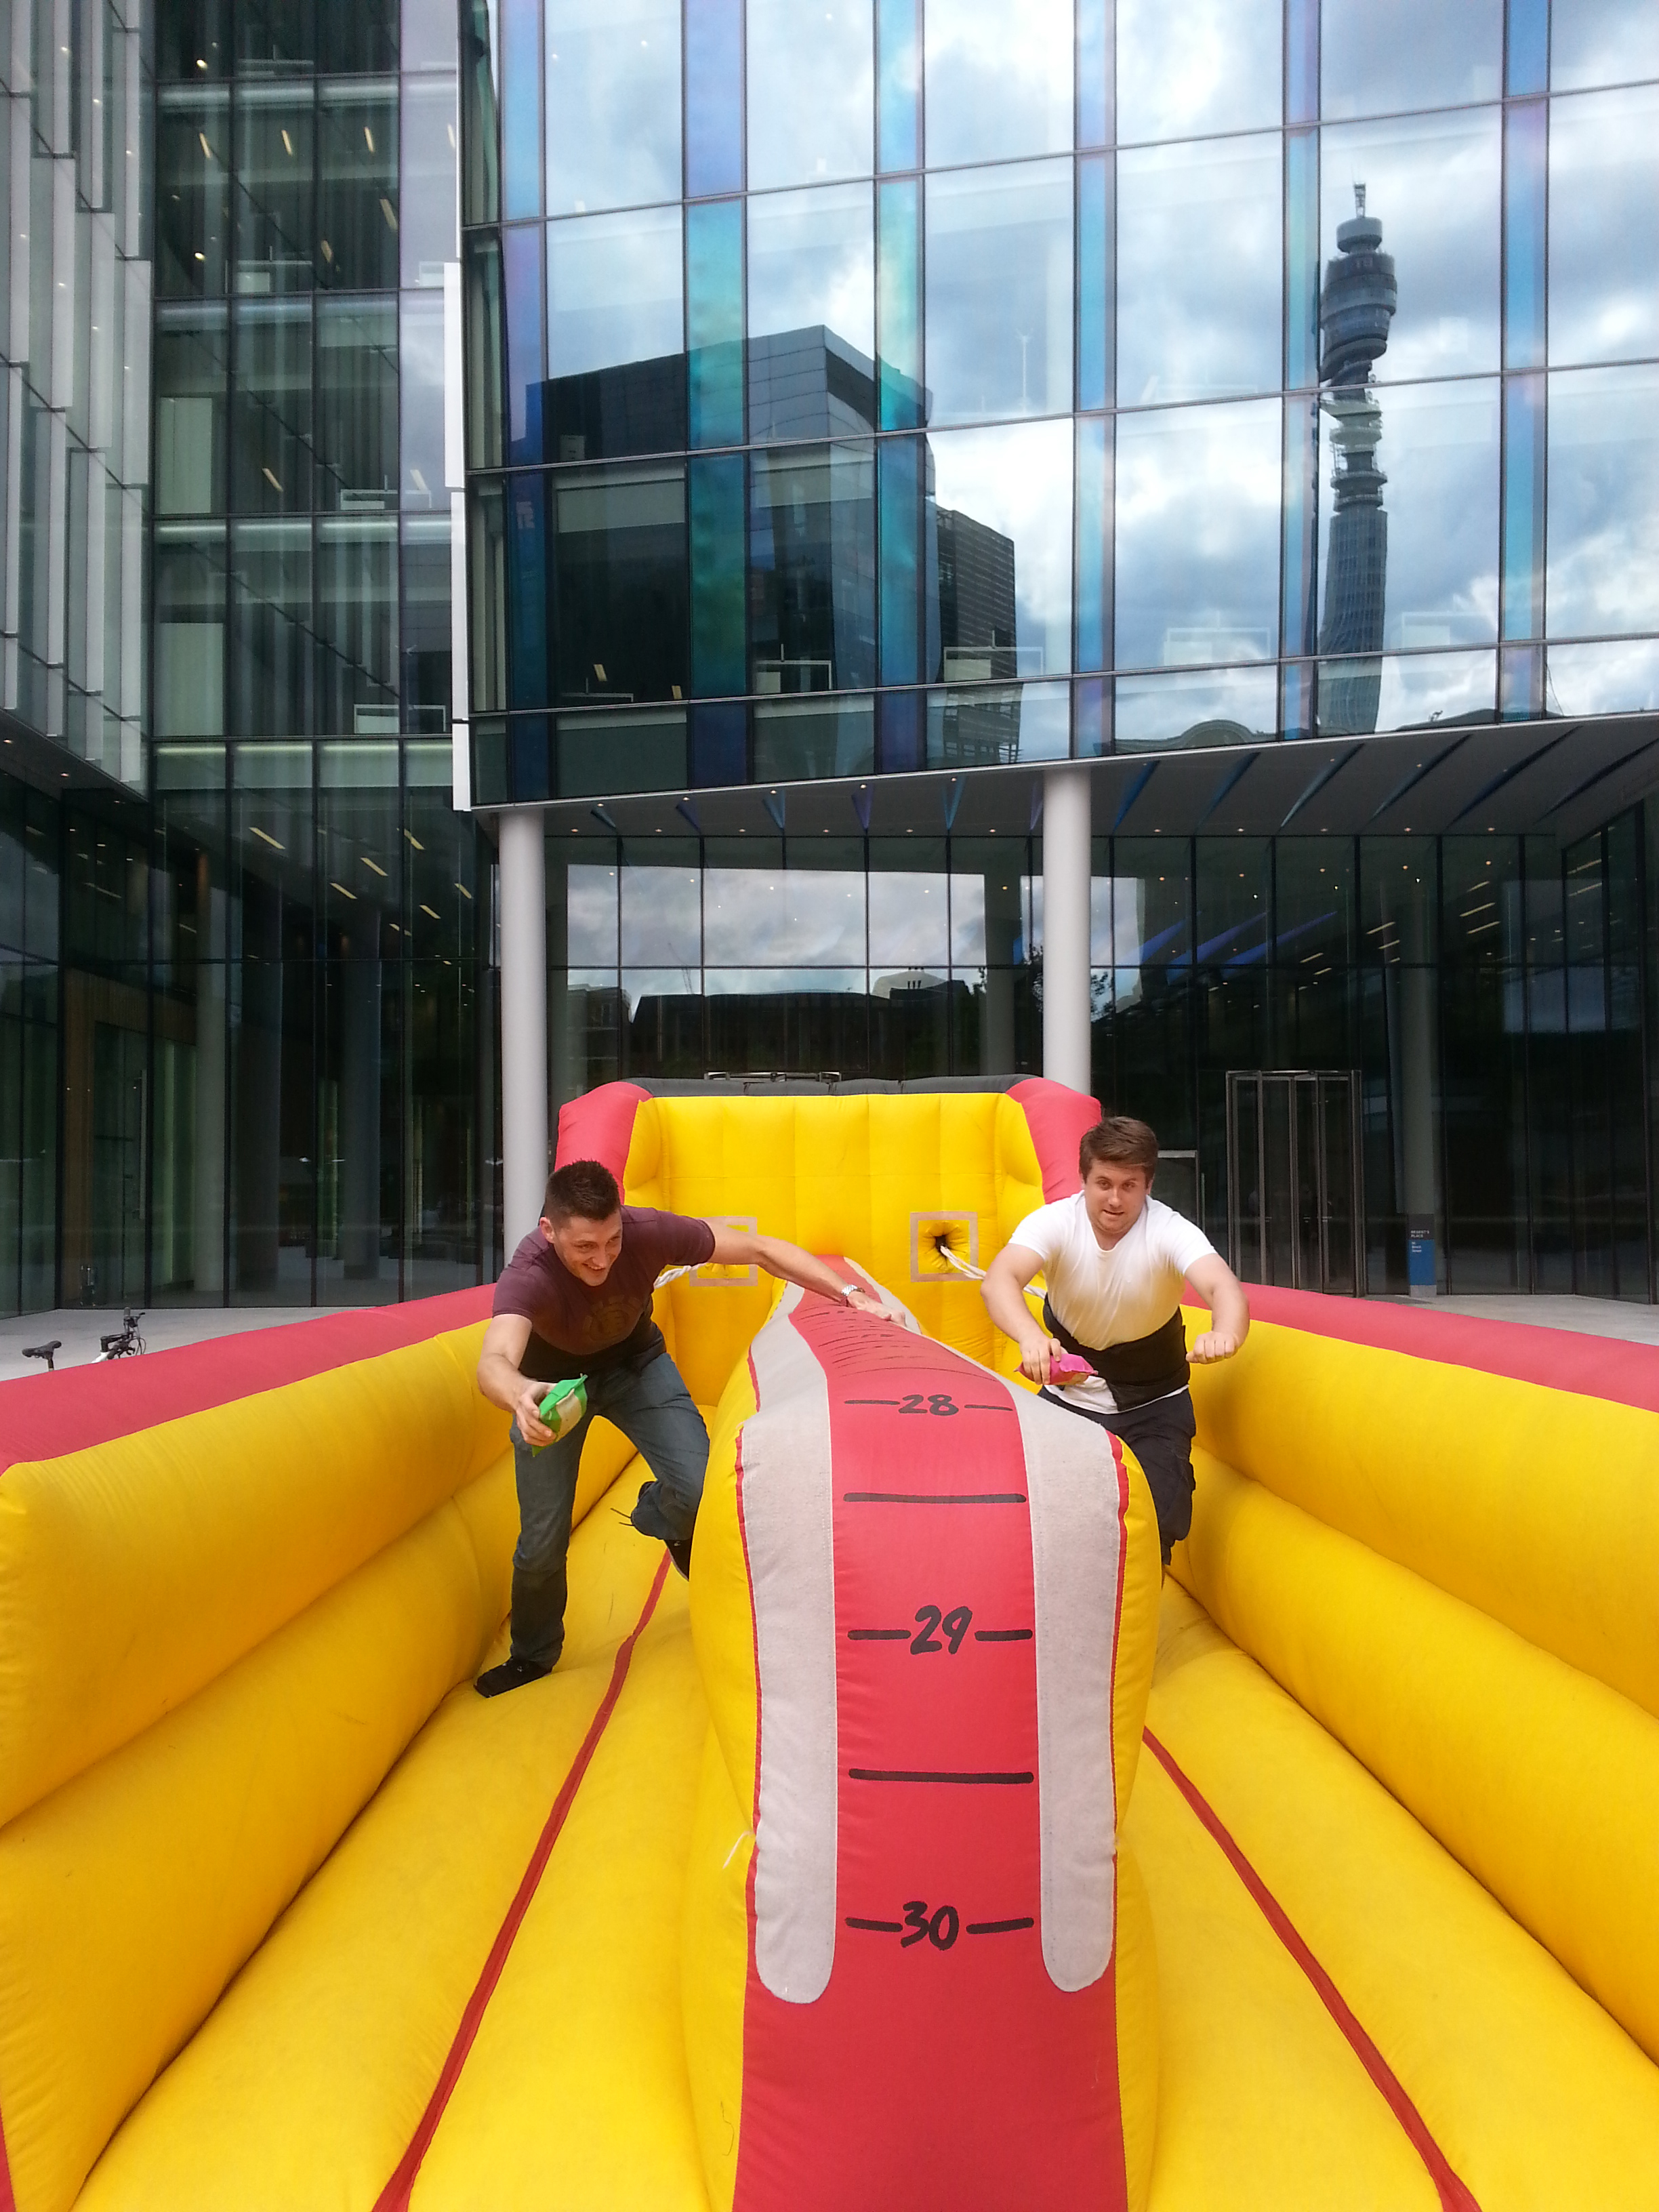 Bungee Run Fun Inflatables Sports Inflatable Sales